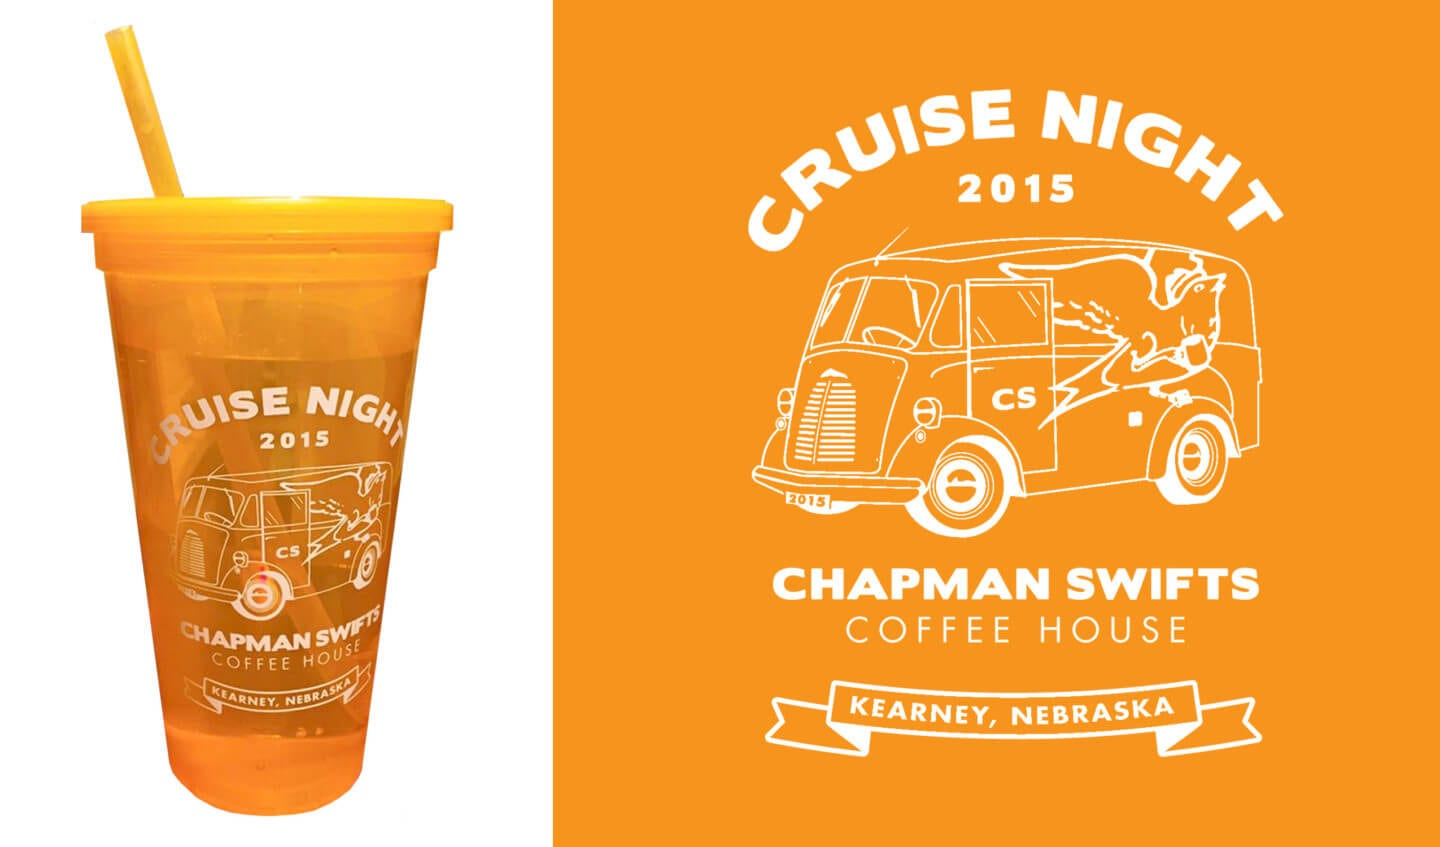 Chapman Swifts Cruise Cup